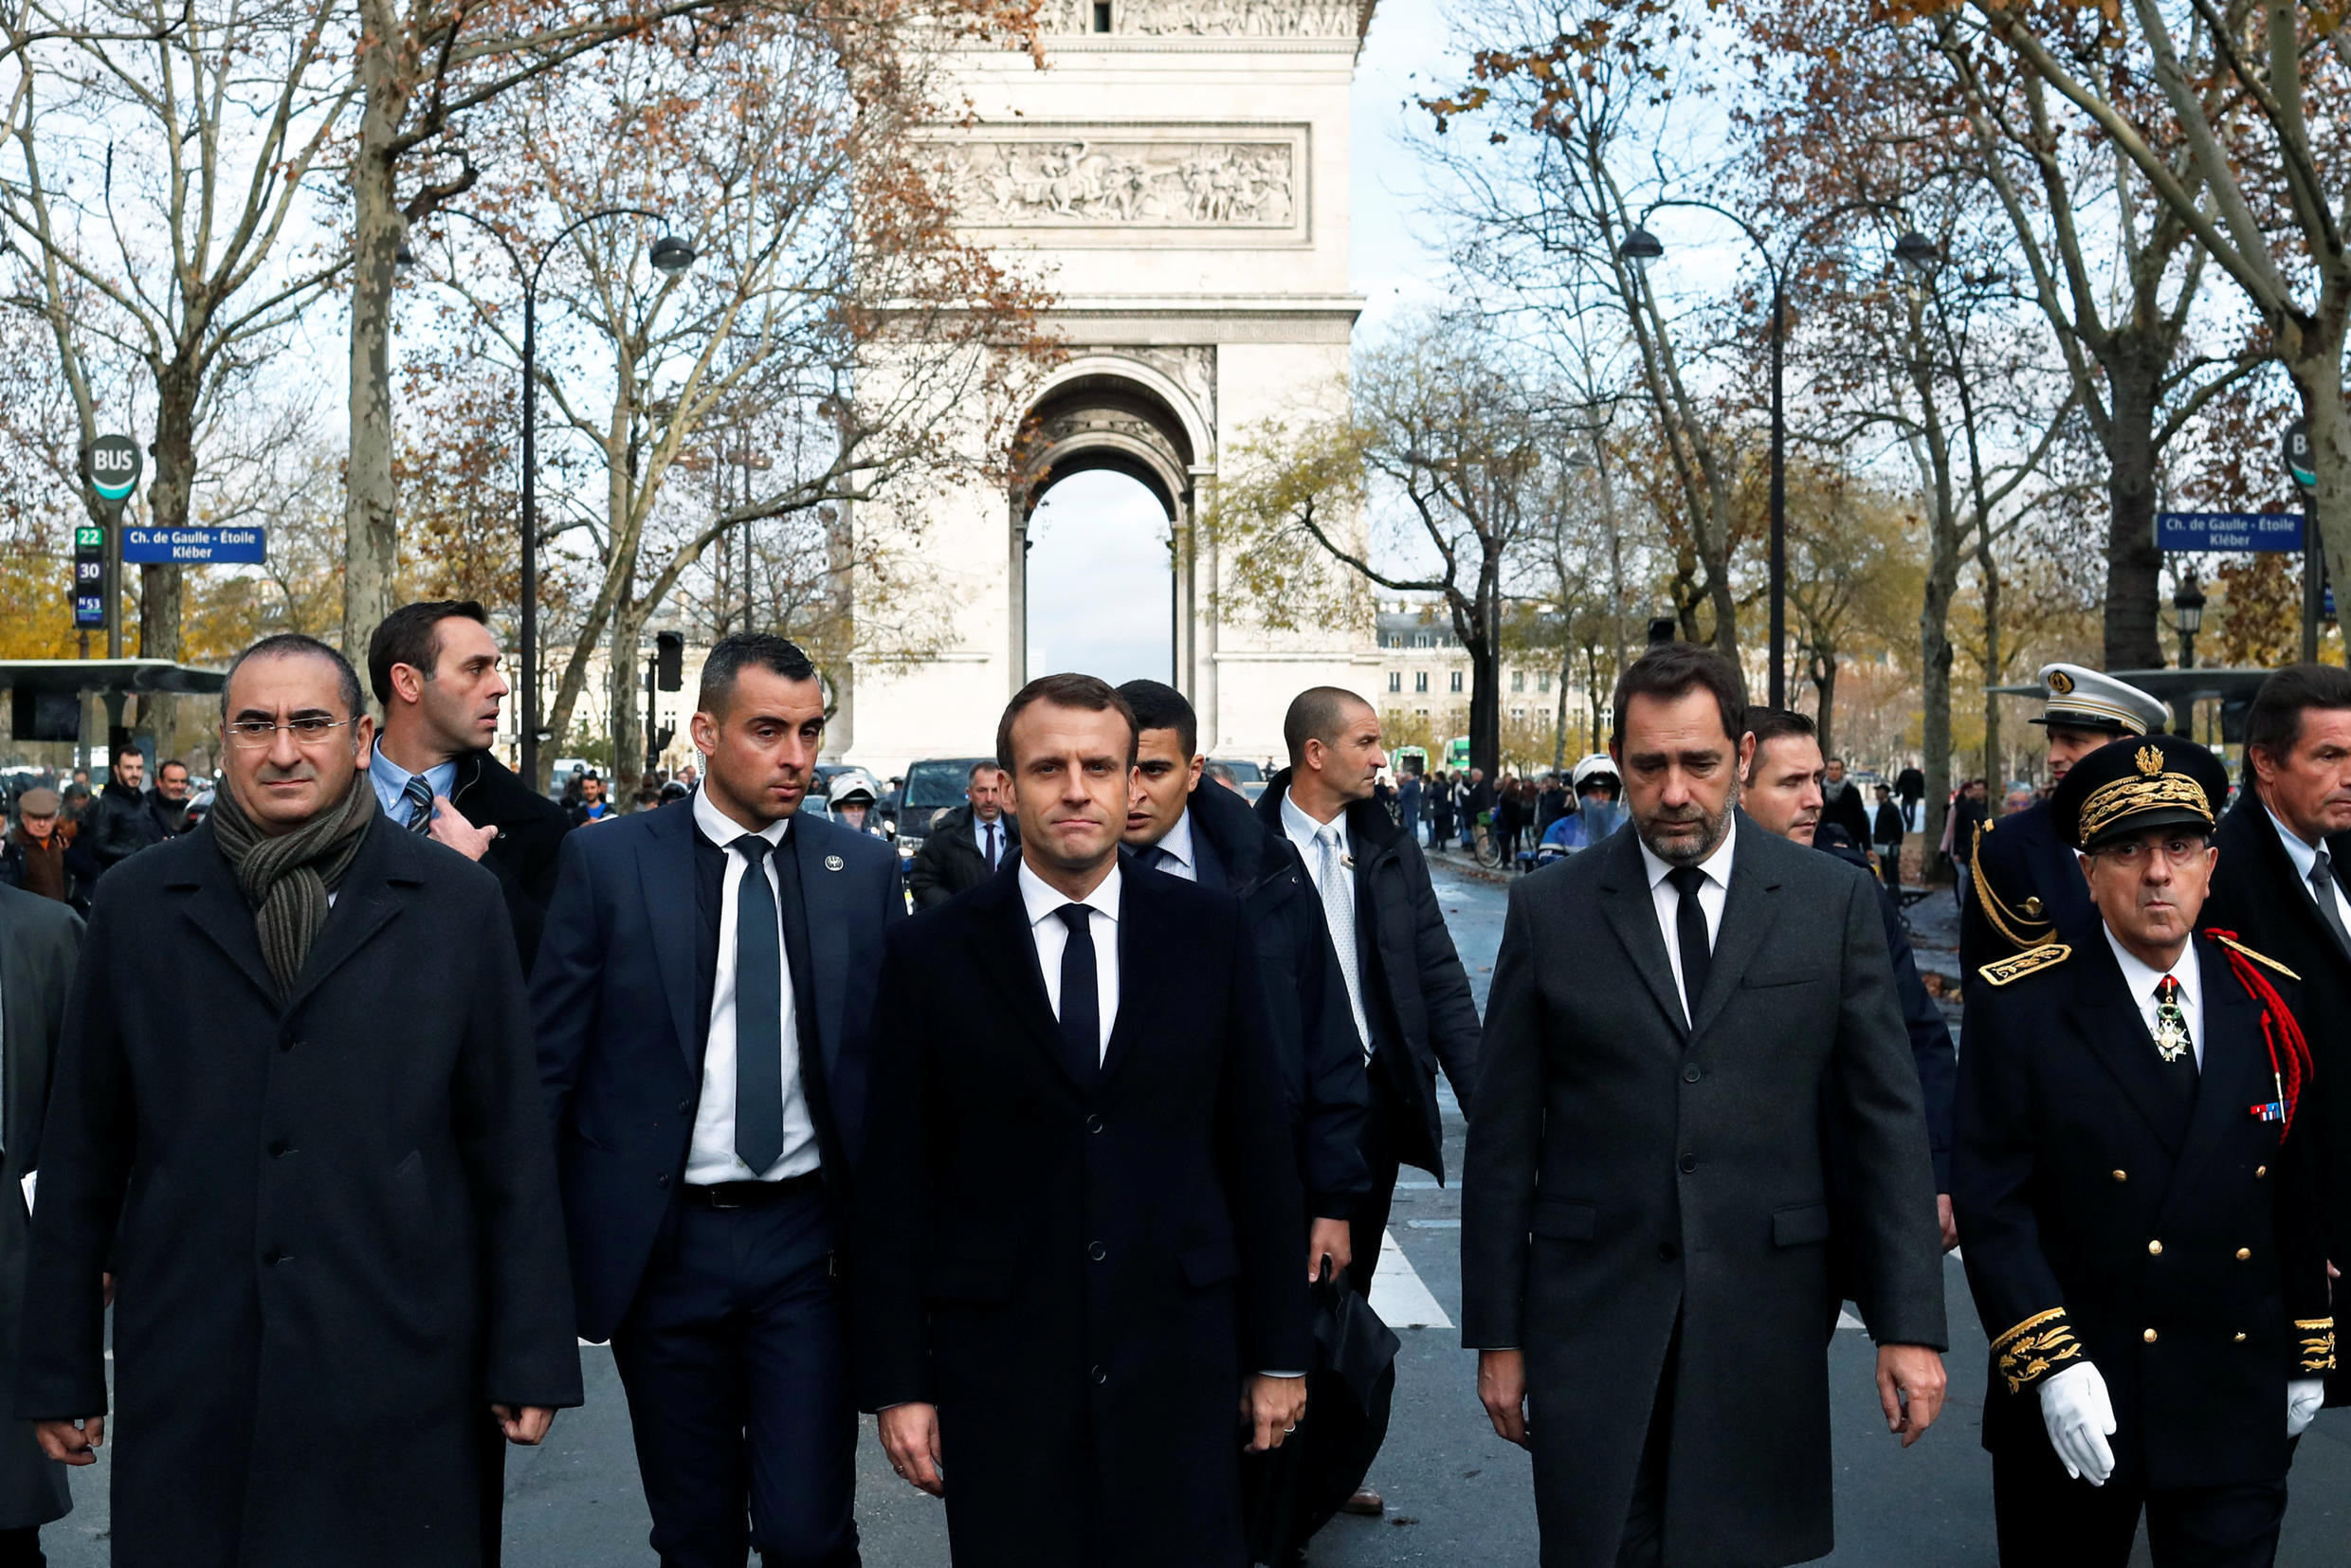 France's President Emmanuel Macron, France's Interior Minister Christophe Castaner, Secretary of State to the Interior Minister Laurent Nunez and Paris police prefect Michel Delpuech arrive to visit firefighters and riot police officers the day after a dem